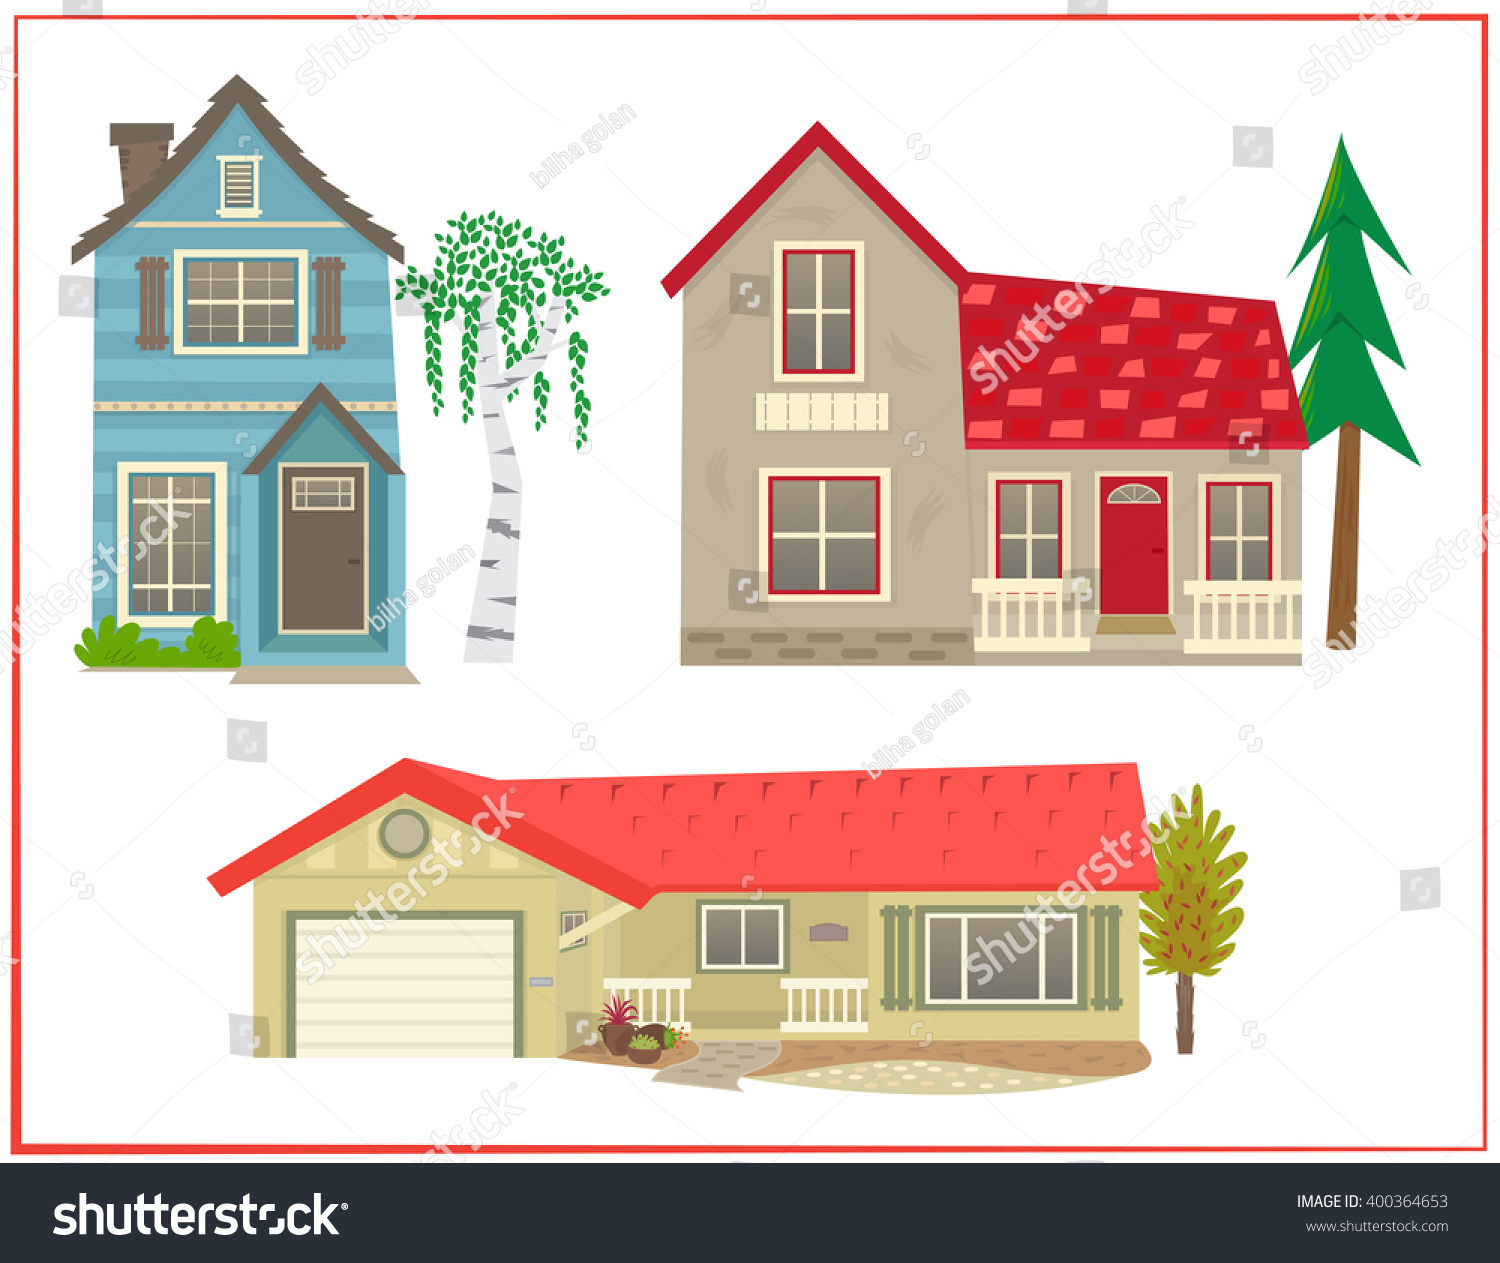 Cute houses cartoon set three different stock vector for Different styles of houses